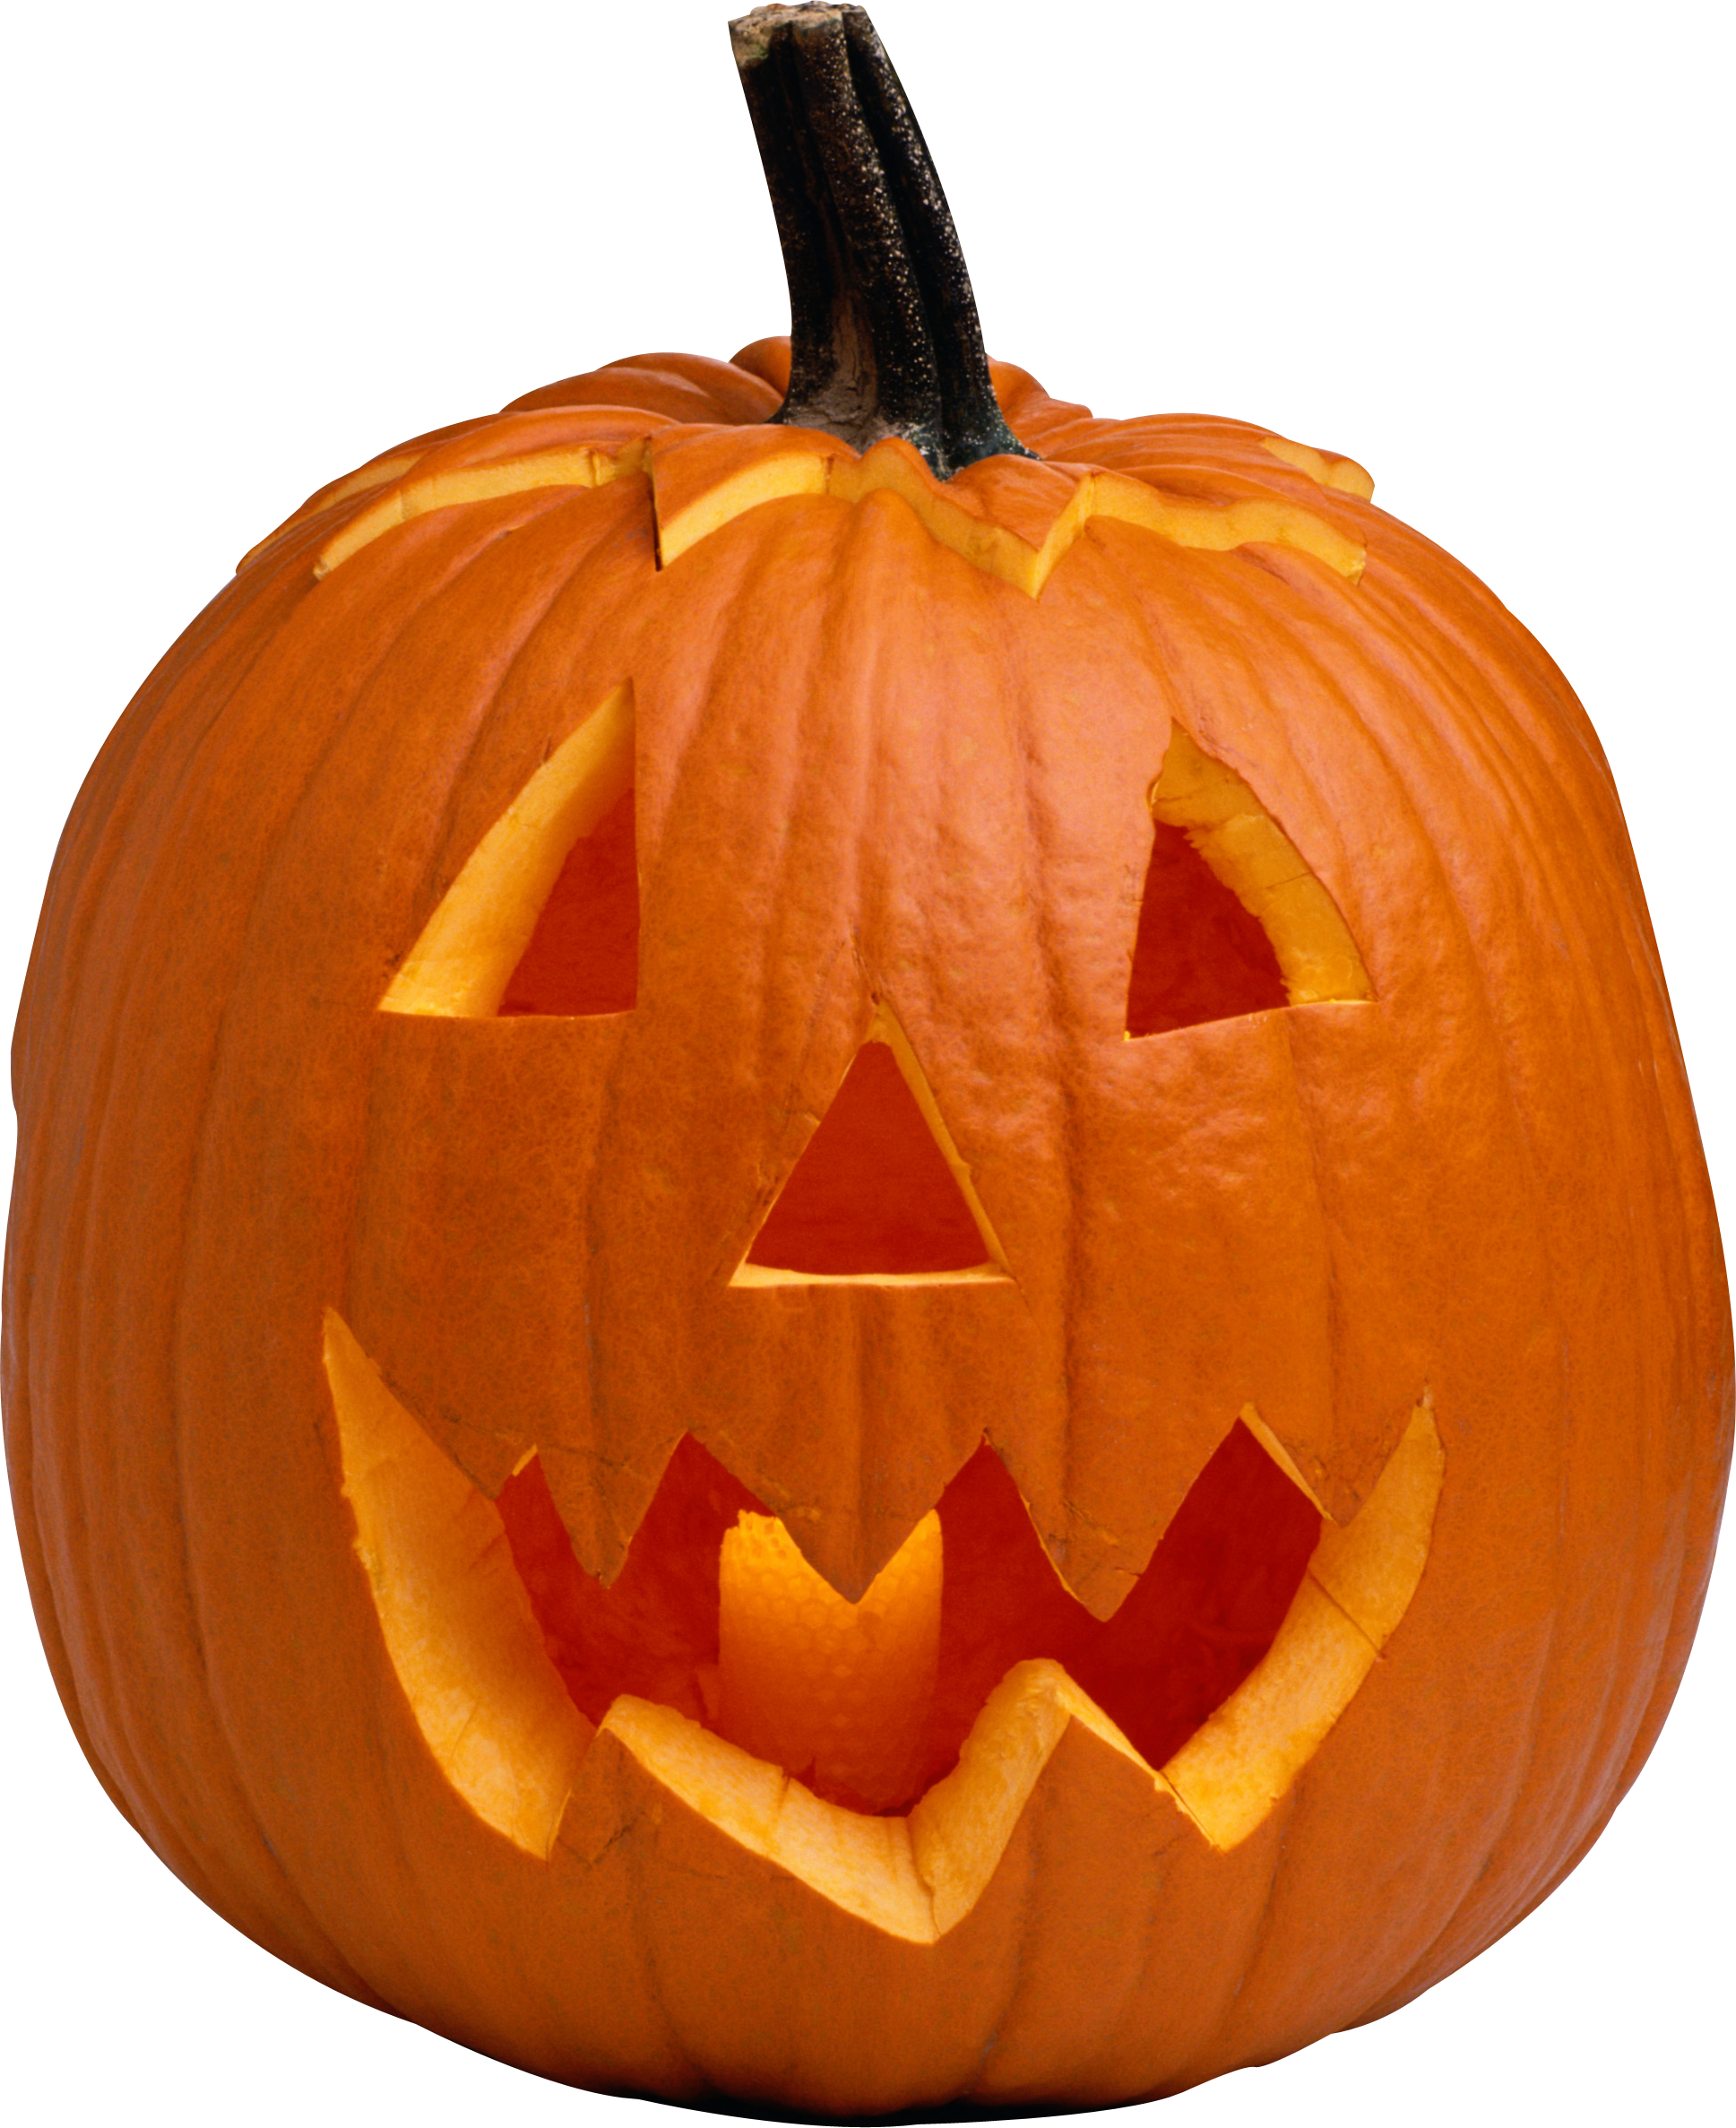 Pumpkin PNG images free download.